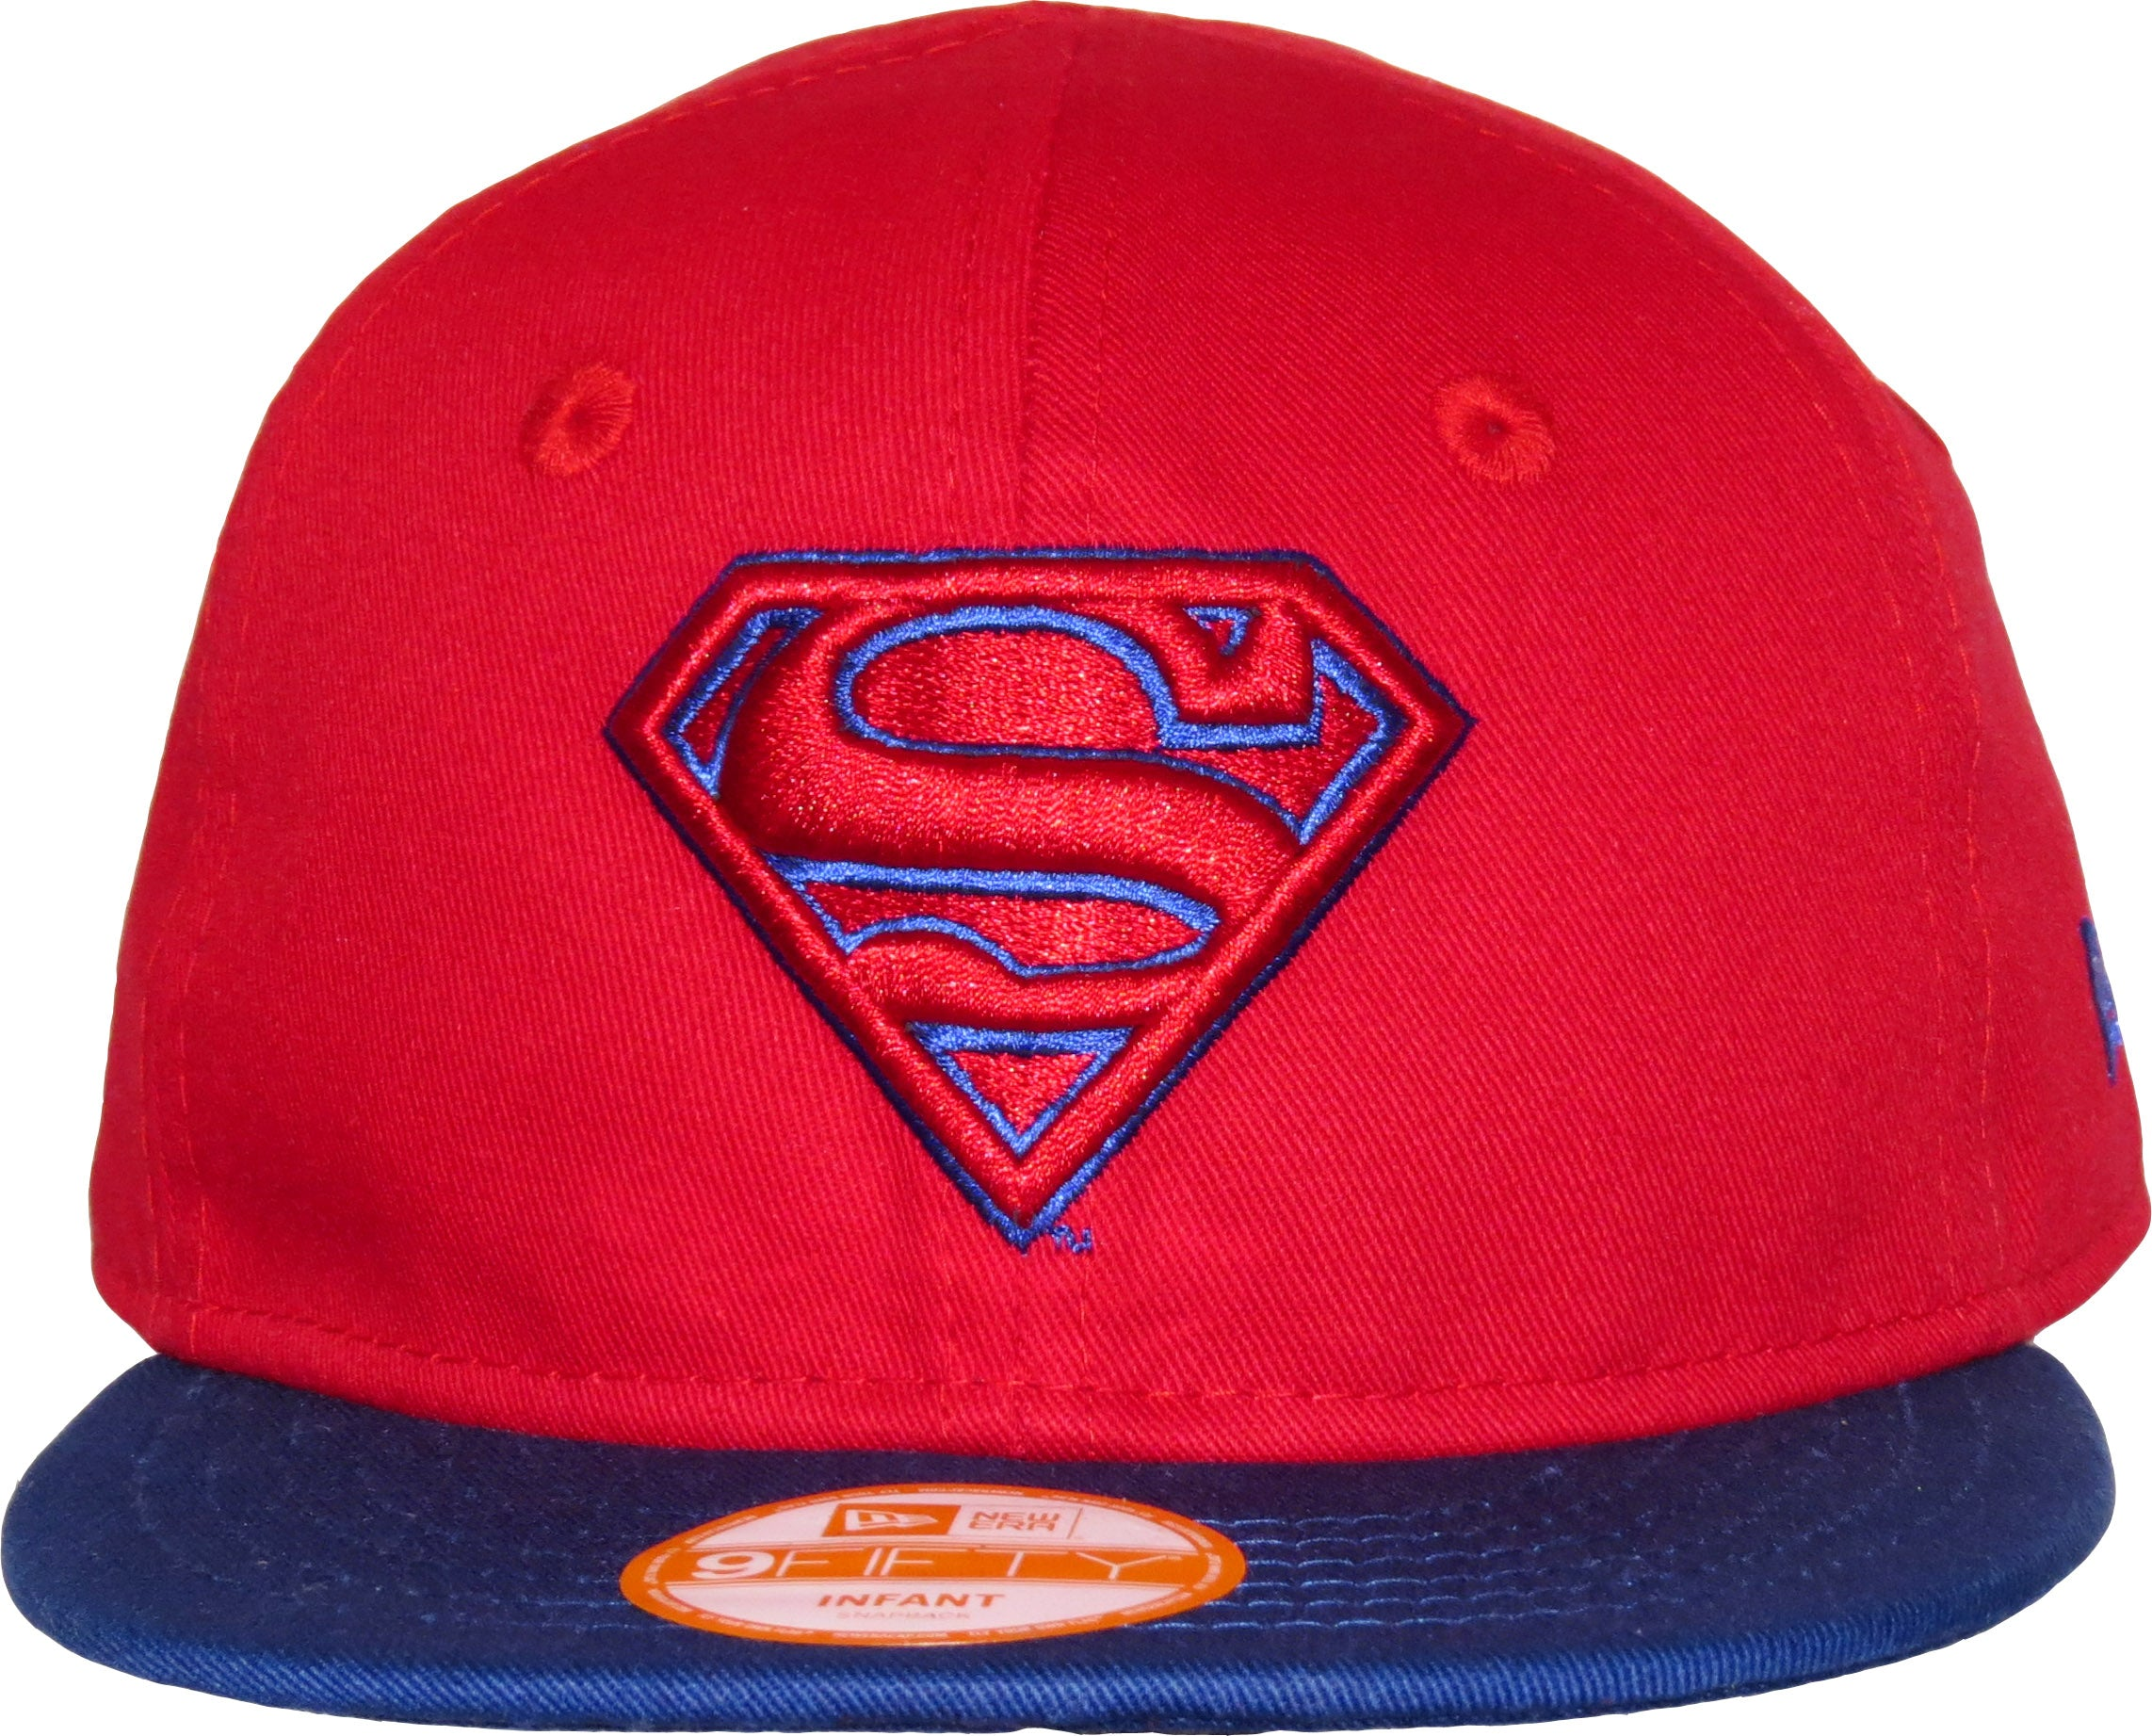 305a643fc5c Superman New Era 950 Infants Red Snapback Cap ( 0 - 2 years old ...